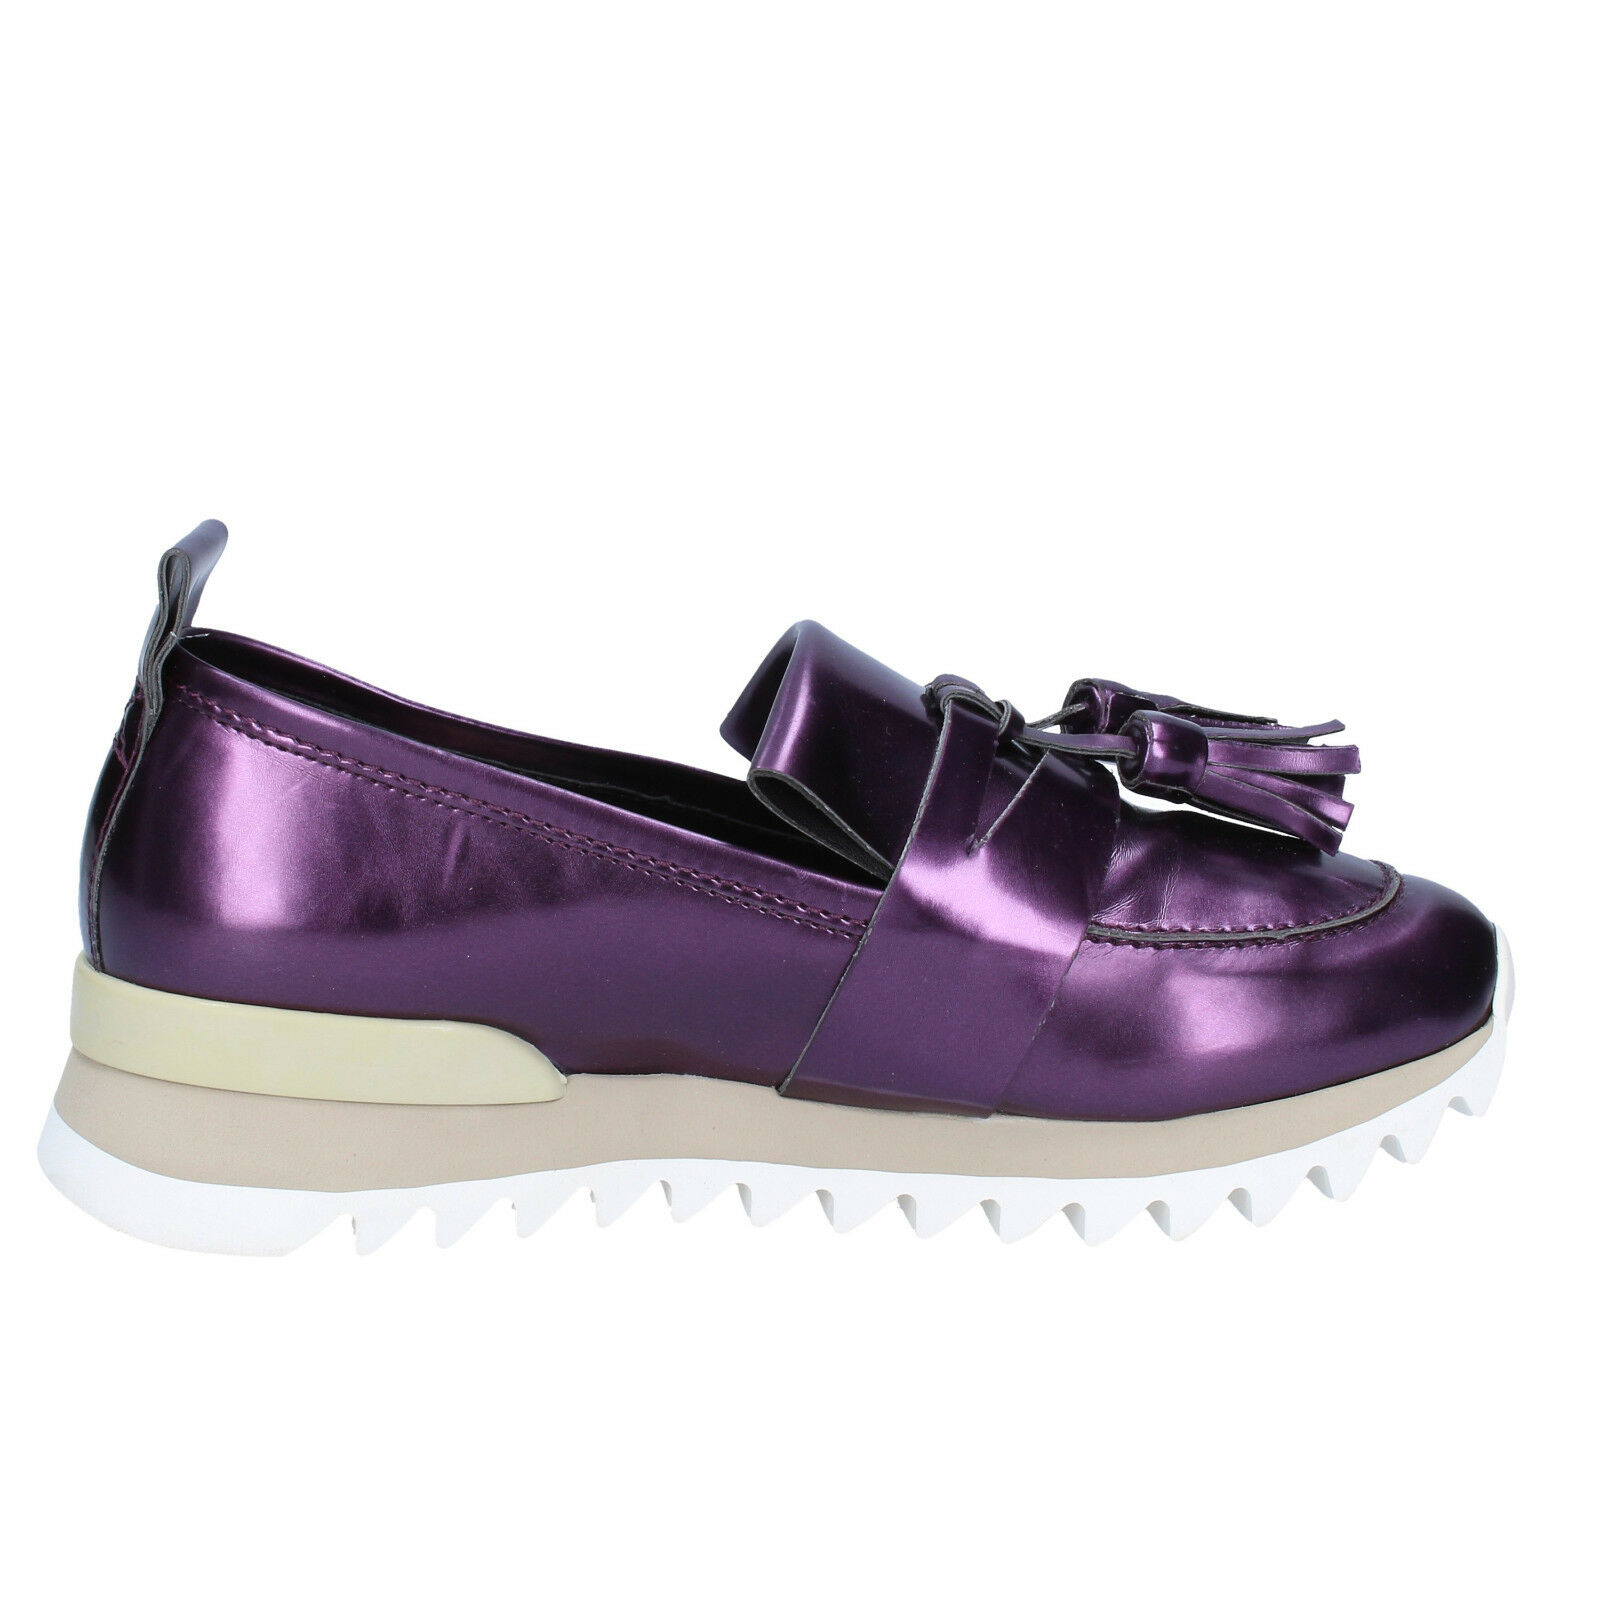 Womens shoes MY MY MY GREY MER 3 (EU 36) moccasins purple leather BX37-36 6b97e6